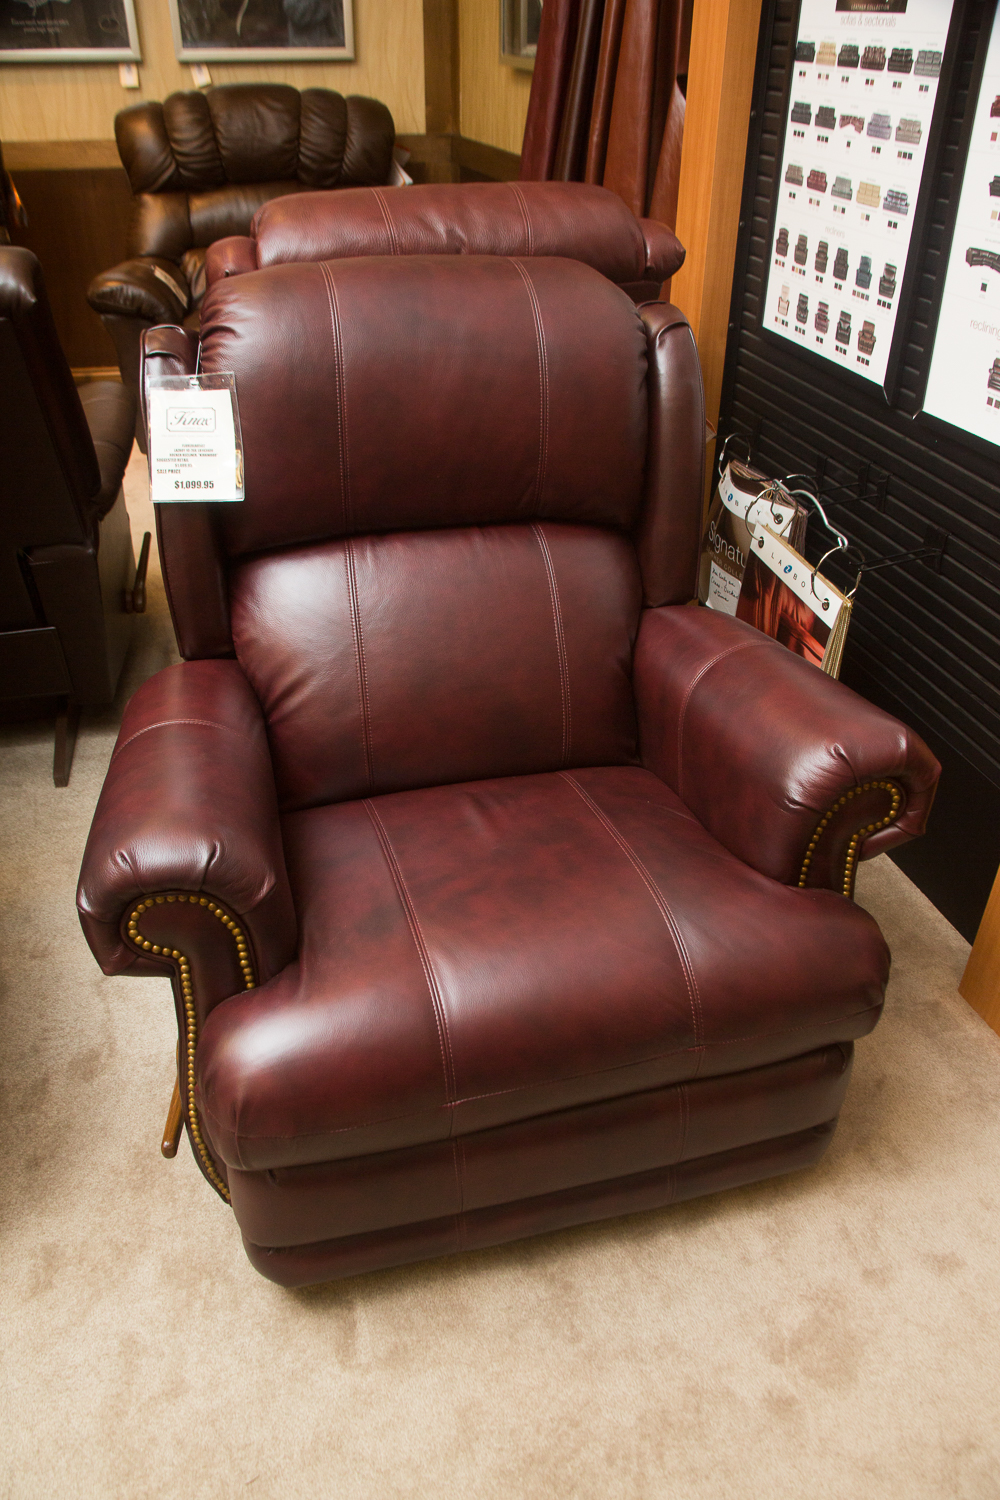 """Kirkwood"" Lazboy chair shown in the harmony leather. Also comes in brown leather at the same price."